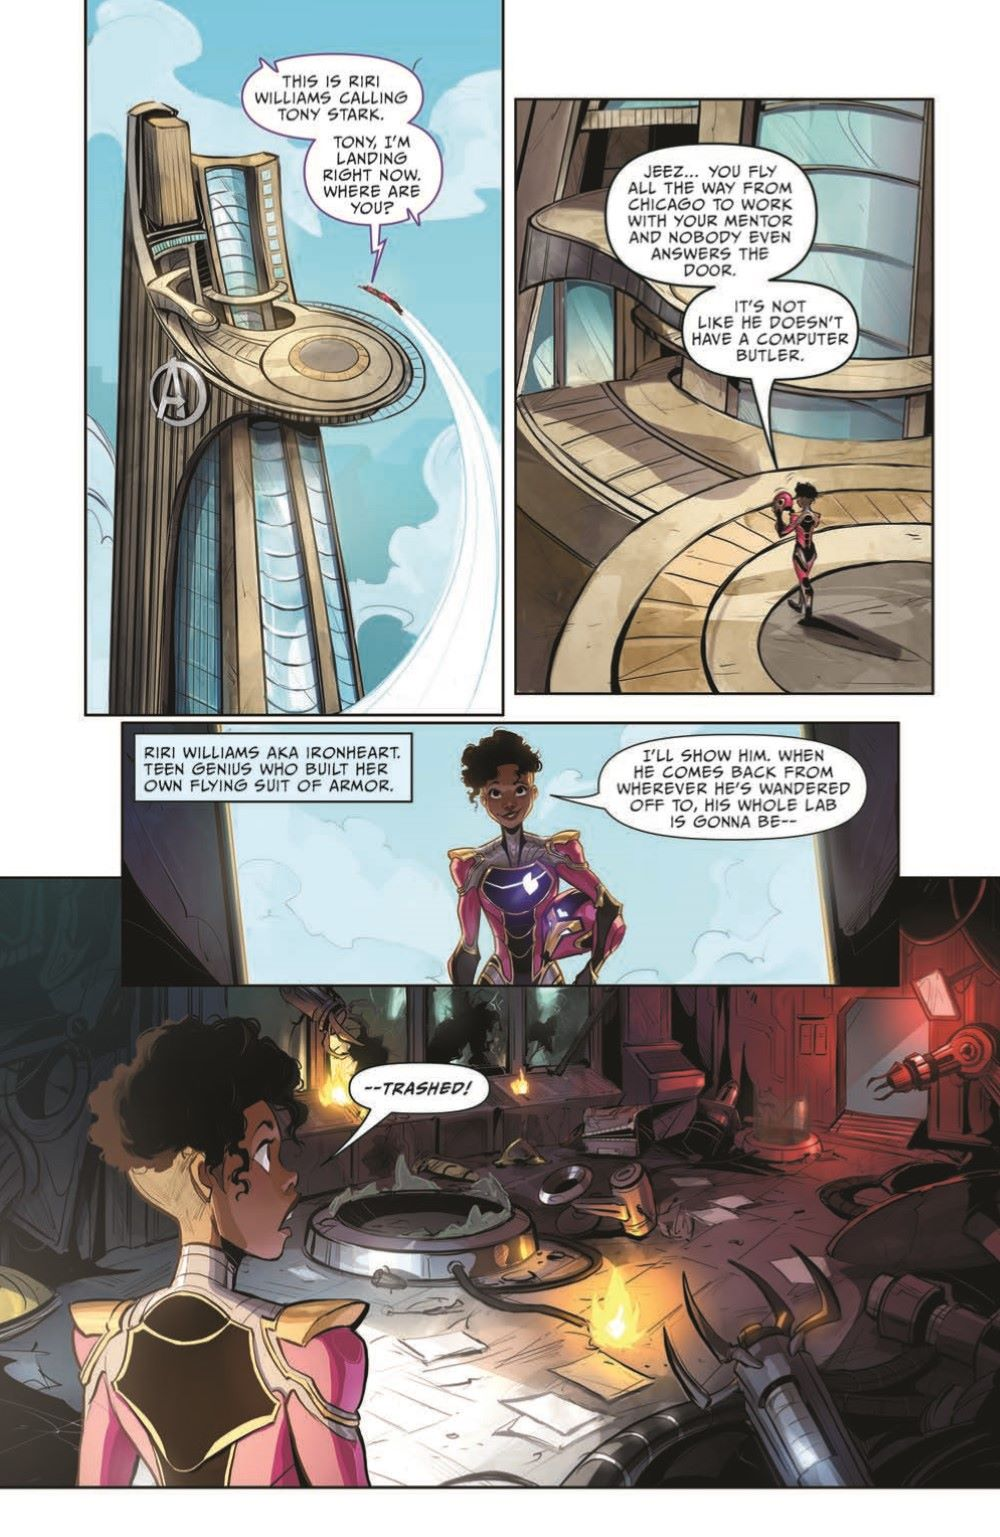 Marvel_Chillers_01_pr-3 ComicList Previews: MARVEL ACTION CHILLERS #1